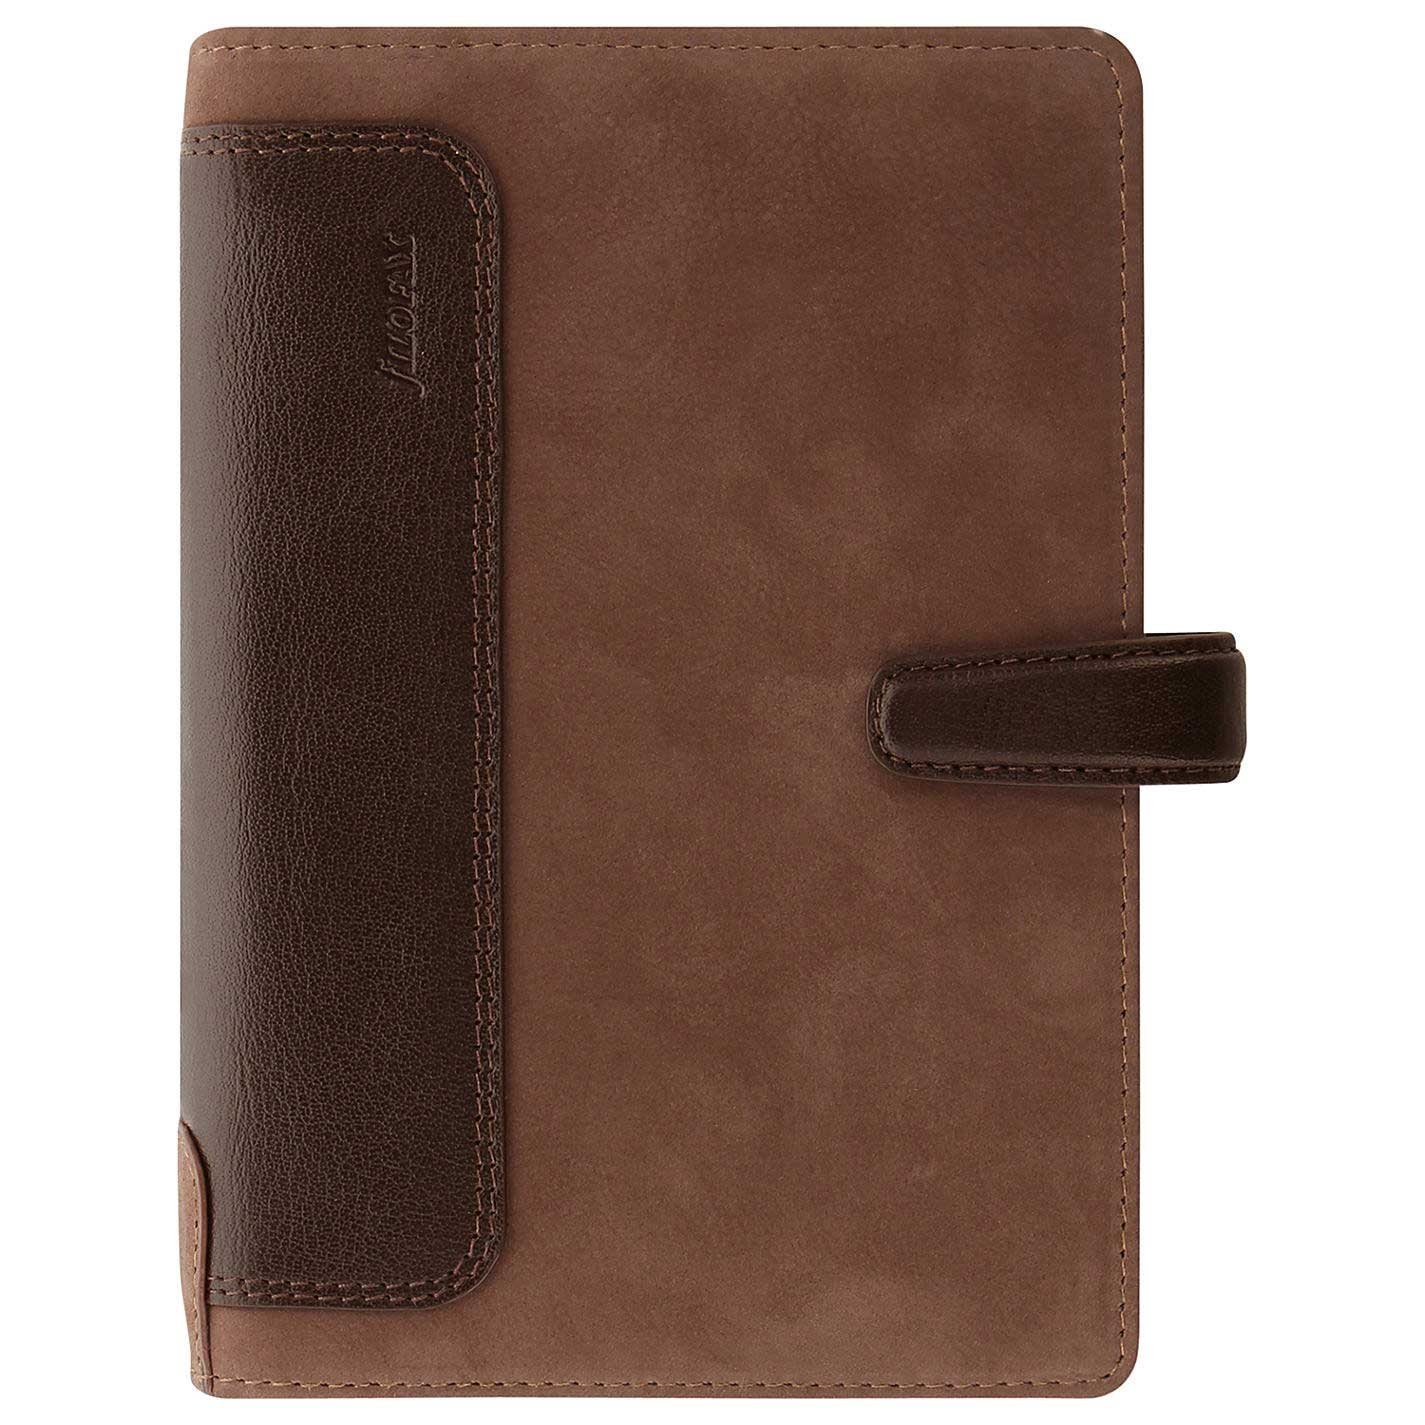 Filofax Holborn Leather Organizer Agenda Calendar Personal Size in Nubuck Brown with DiLoro Jot Pad Refills (Personal, Nubuck Brown 2017, 026040)